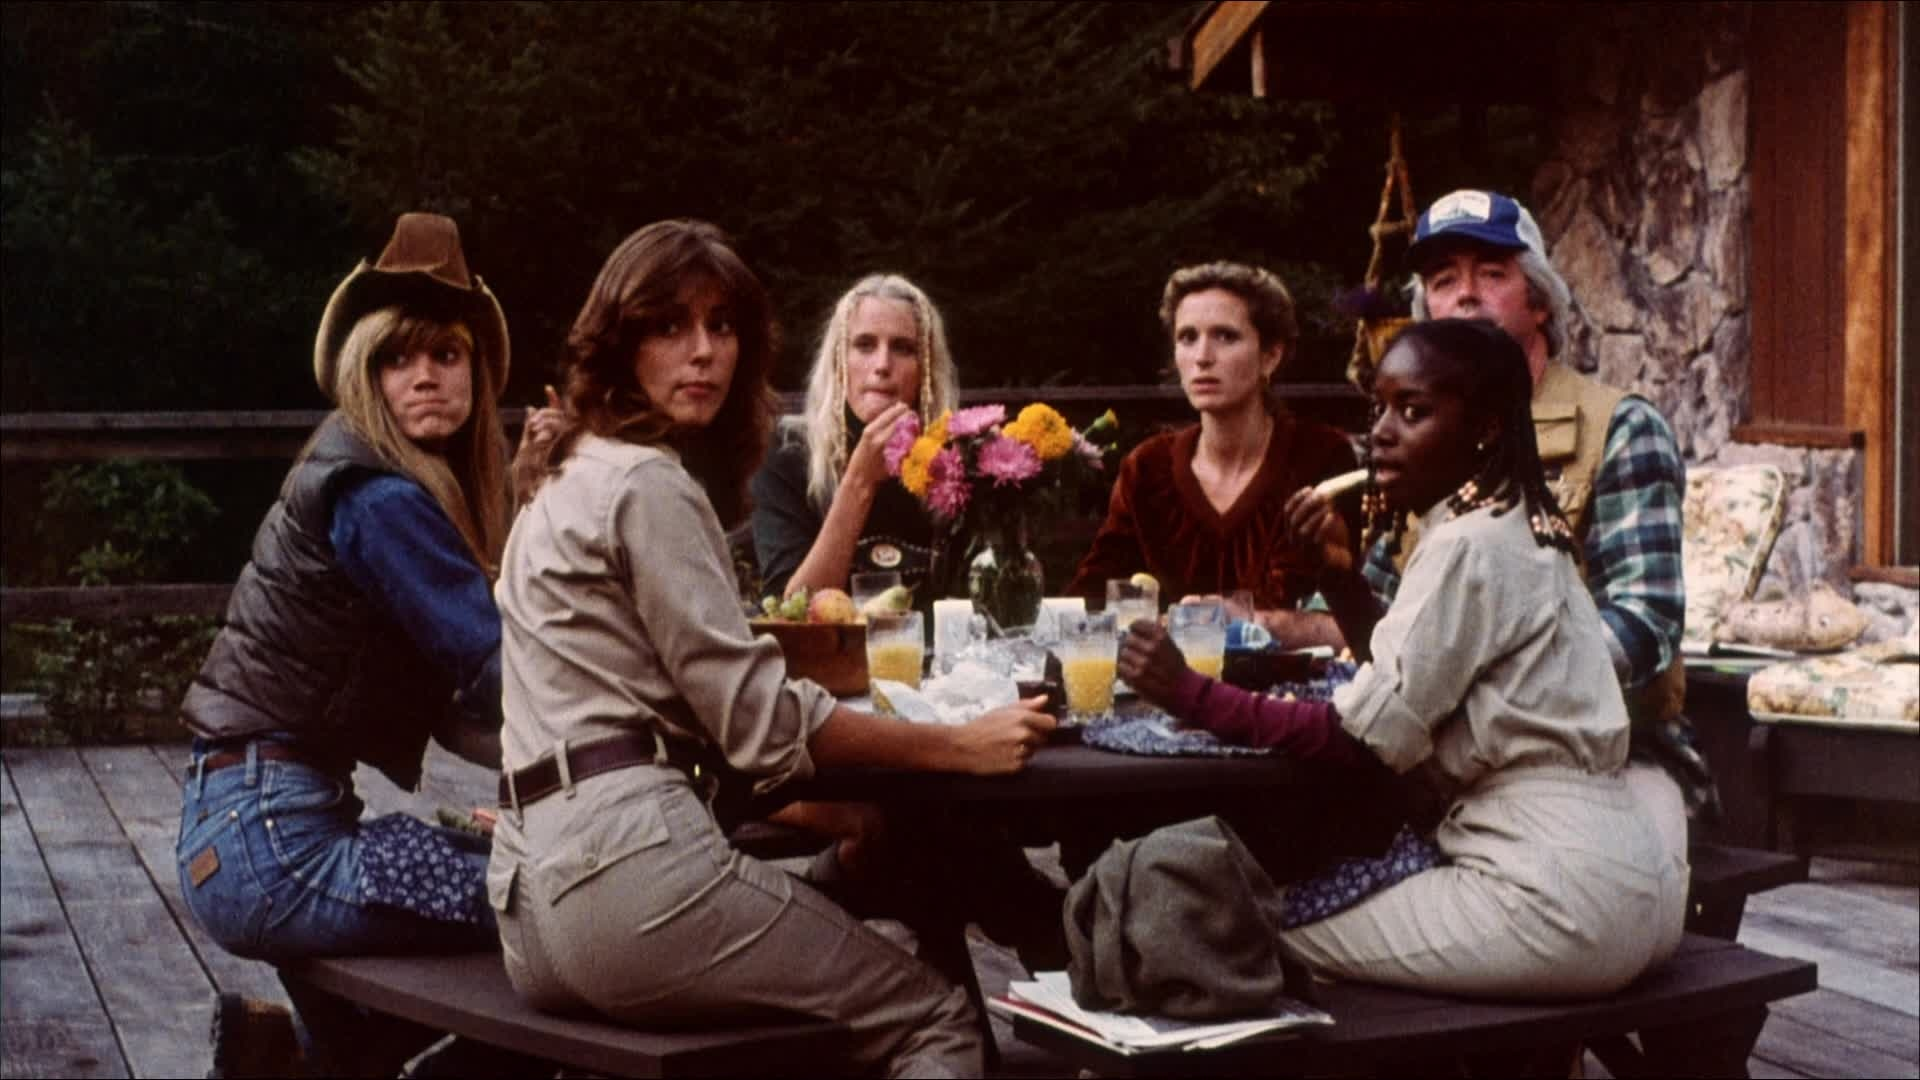 Daryl Hannah, Rachel Ward, Akosua Busia, and Cindy Harrell in The Final Terror (1983)